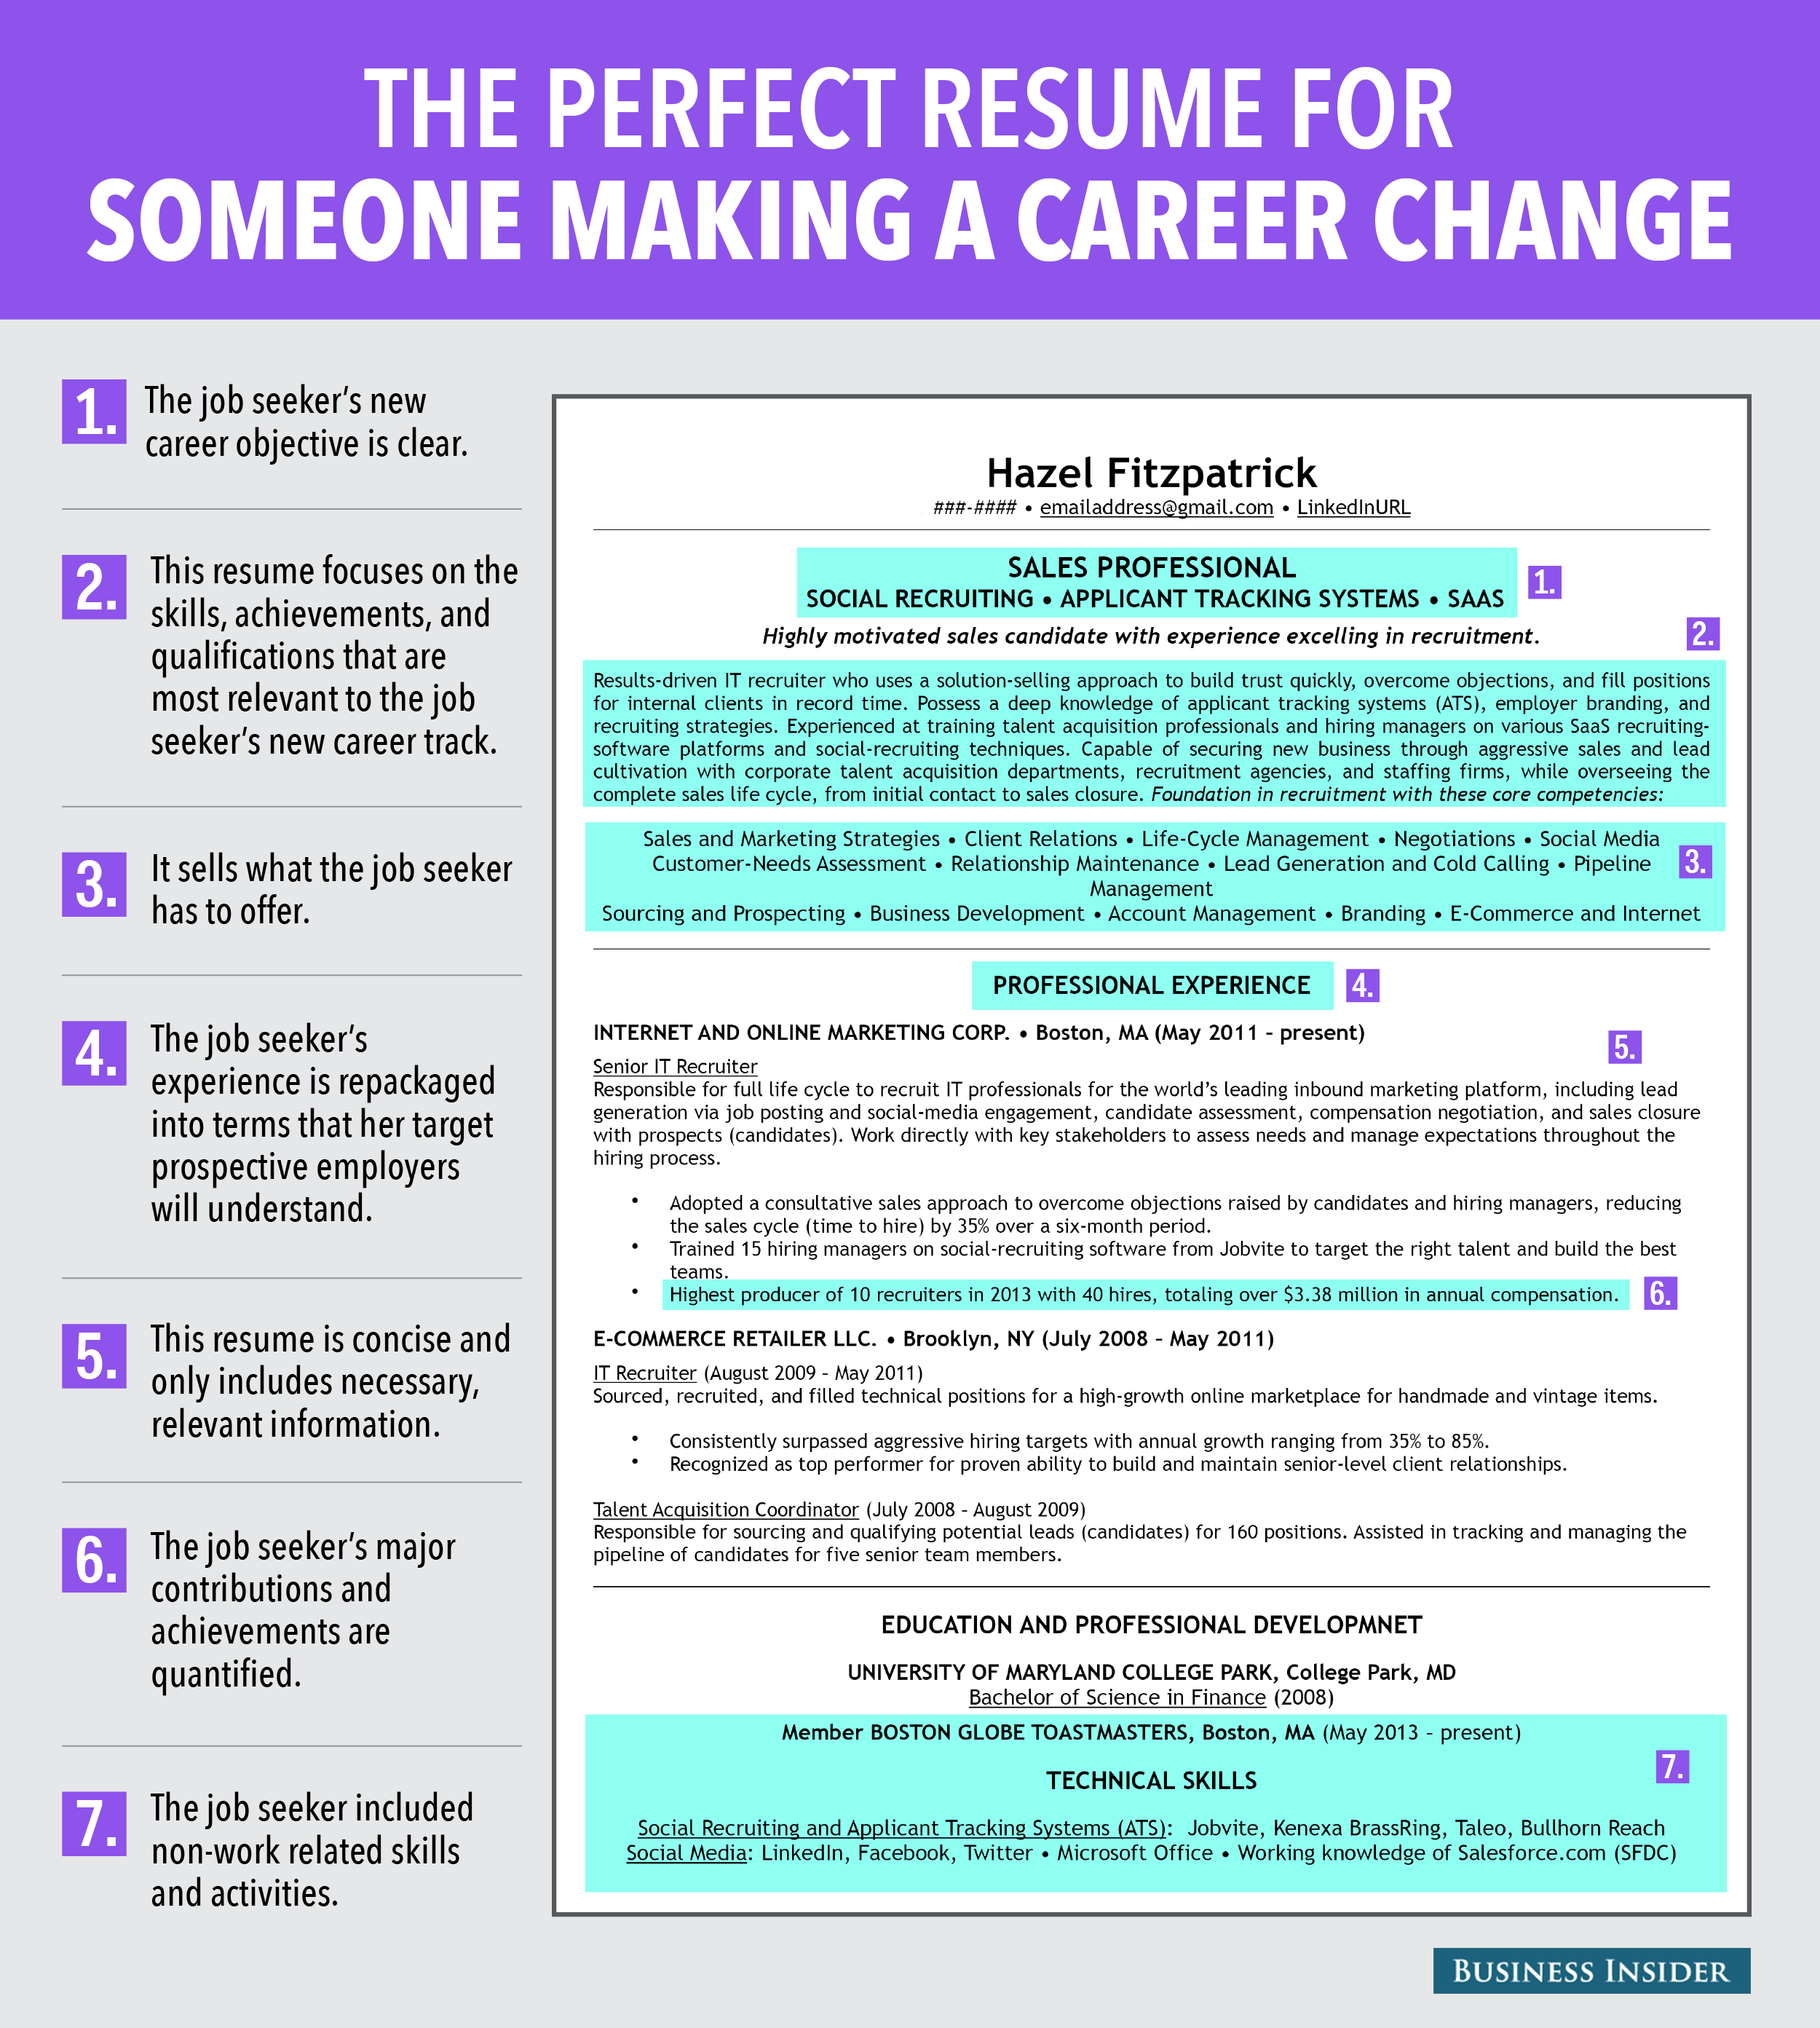 resume Resume Reason For Leaving A Job reason for job change thelongwayup info reasons to jobs 5 why one should hire people who